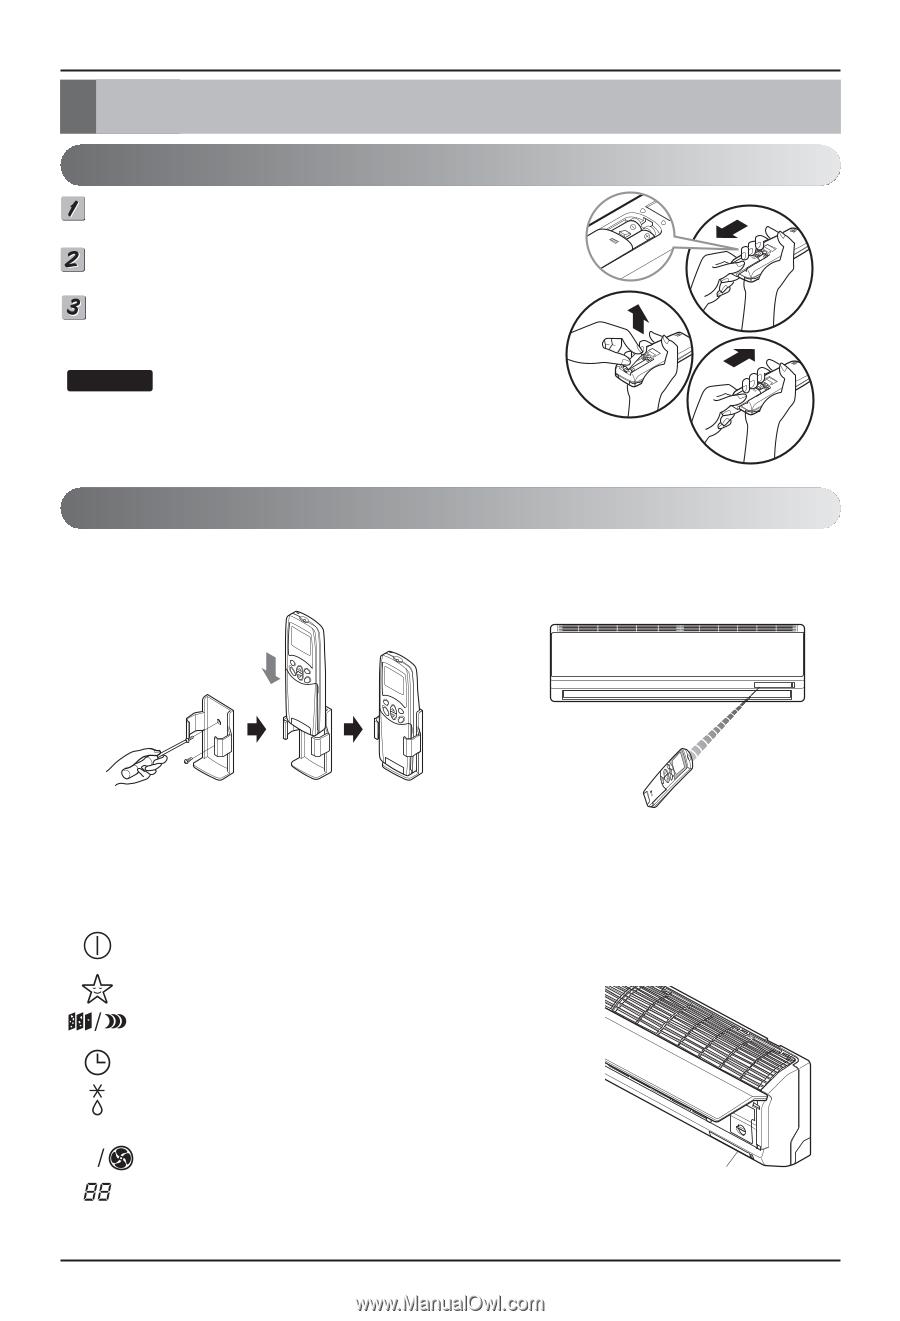 Lg Room Air Conditioner Owner S Manual